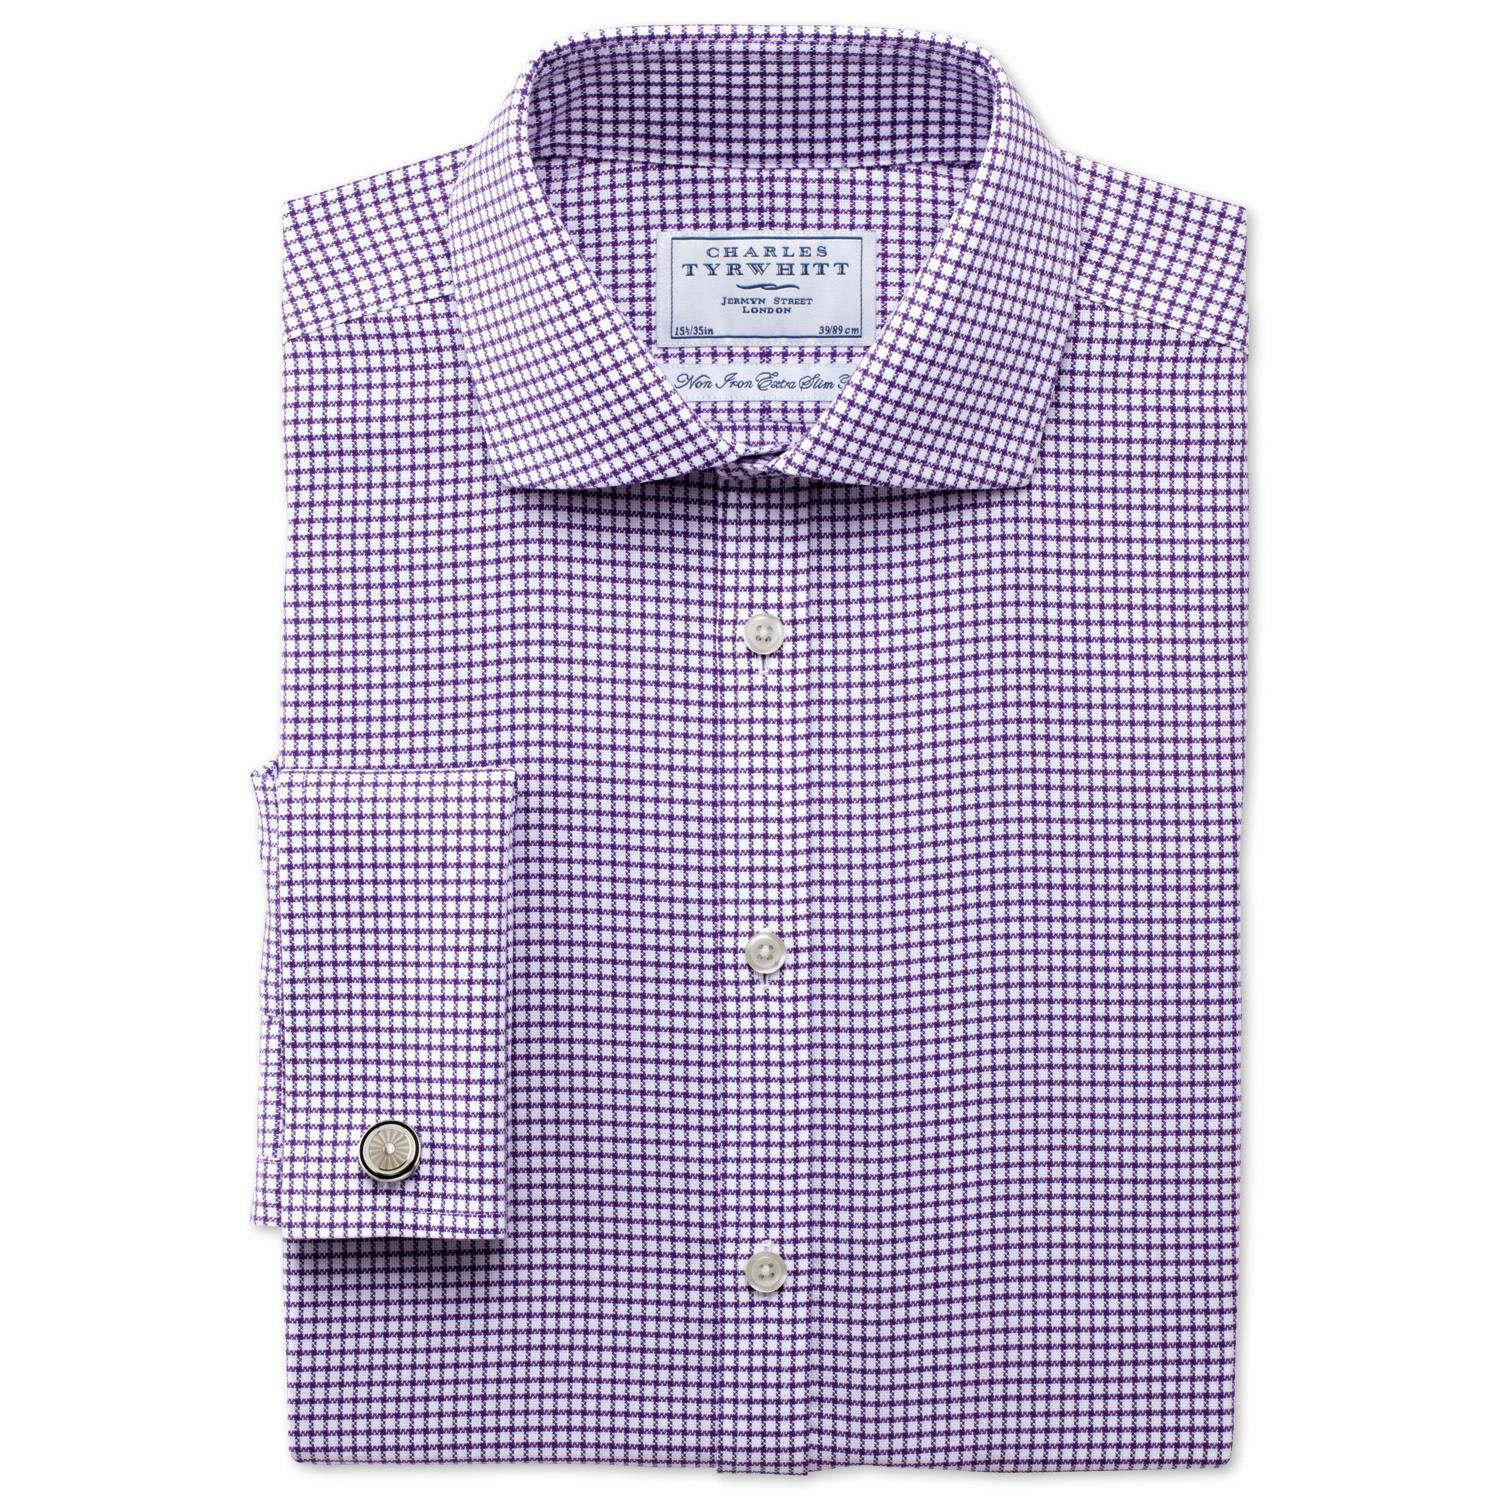 Extra Slim Fit Non-Iron Cutaway Collar Basketweave Check Purple Cotton Formal Shirt Double Cuff Size